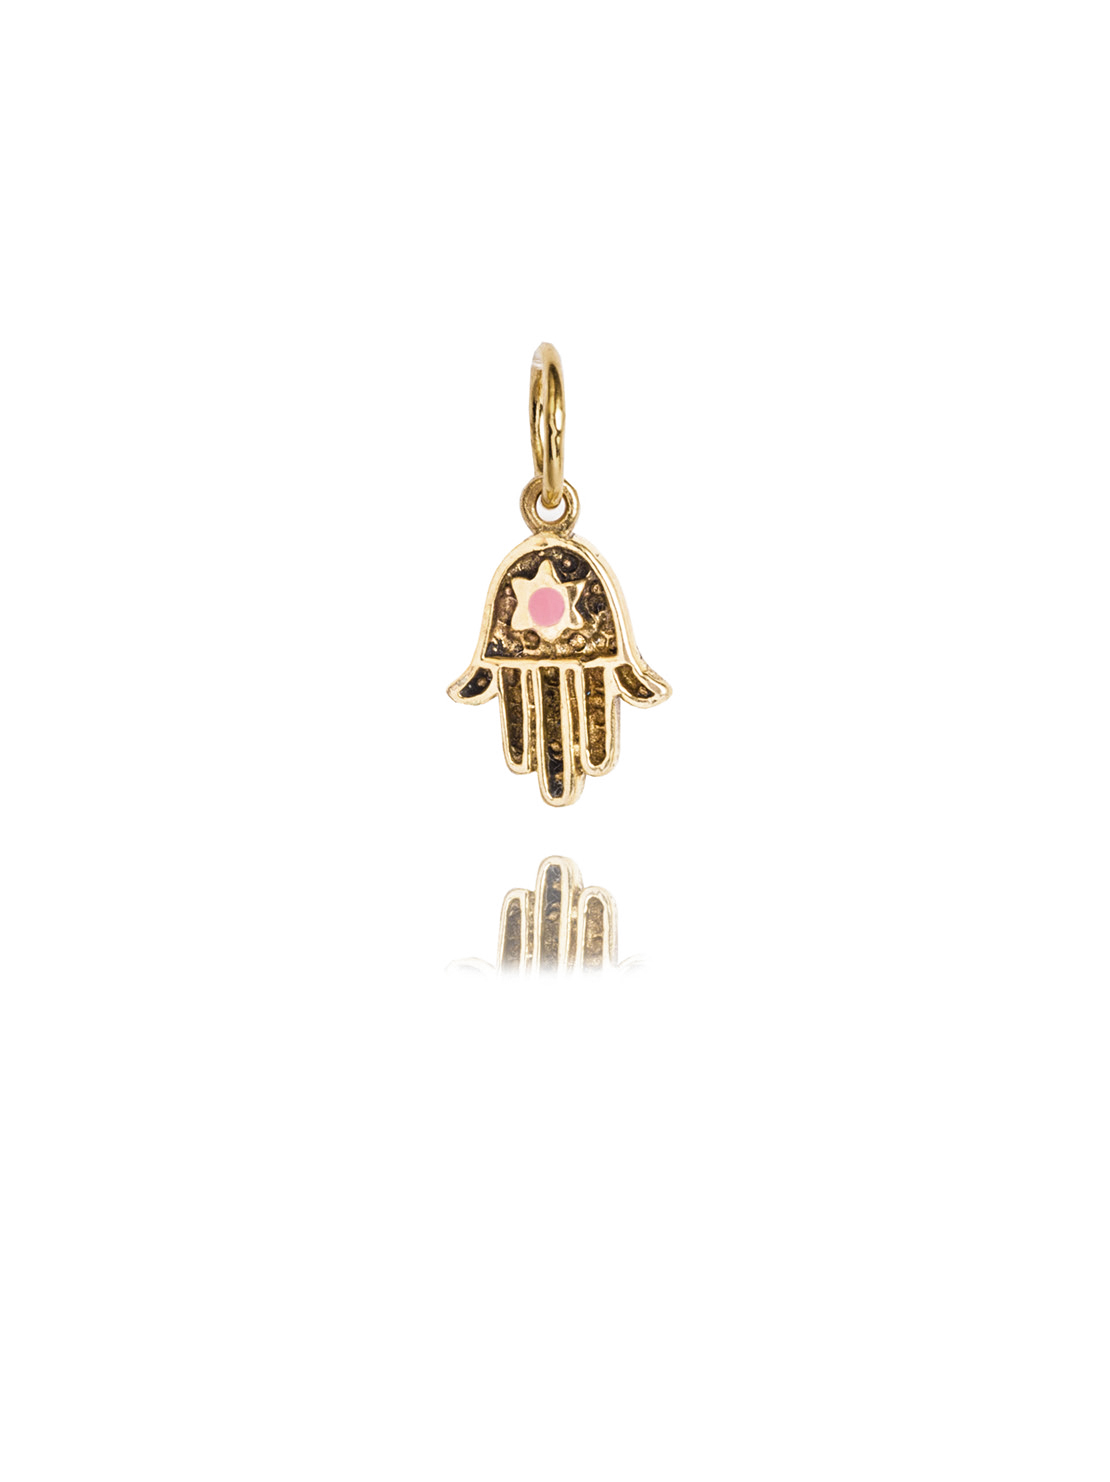 Small Brass Hand Of Fatima Charm